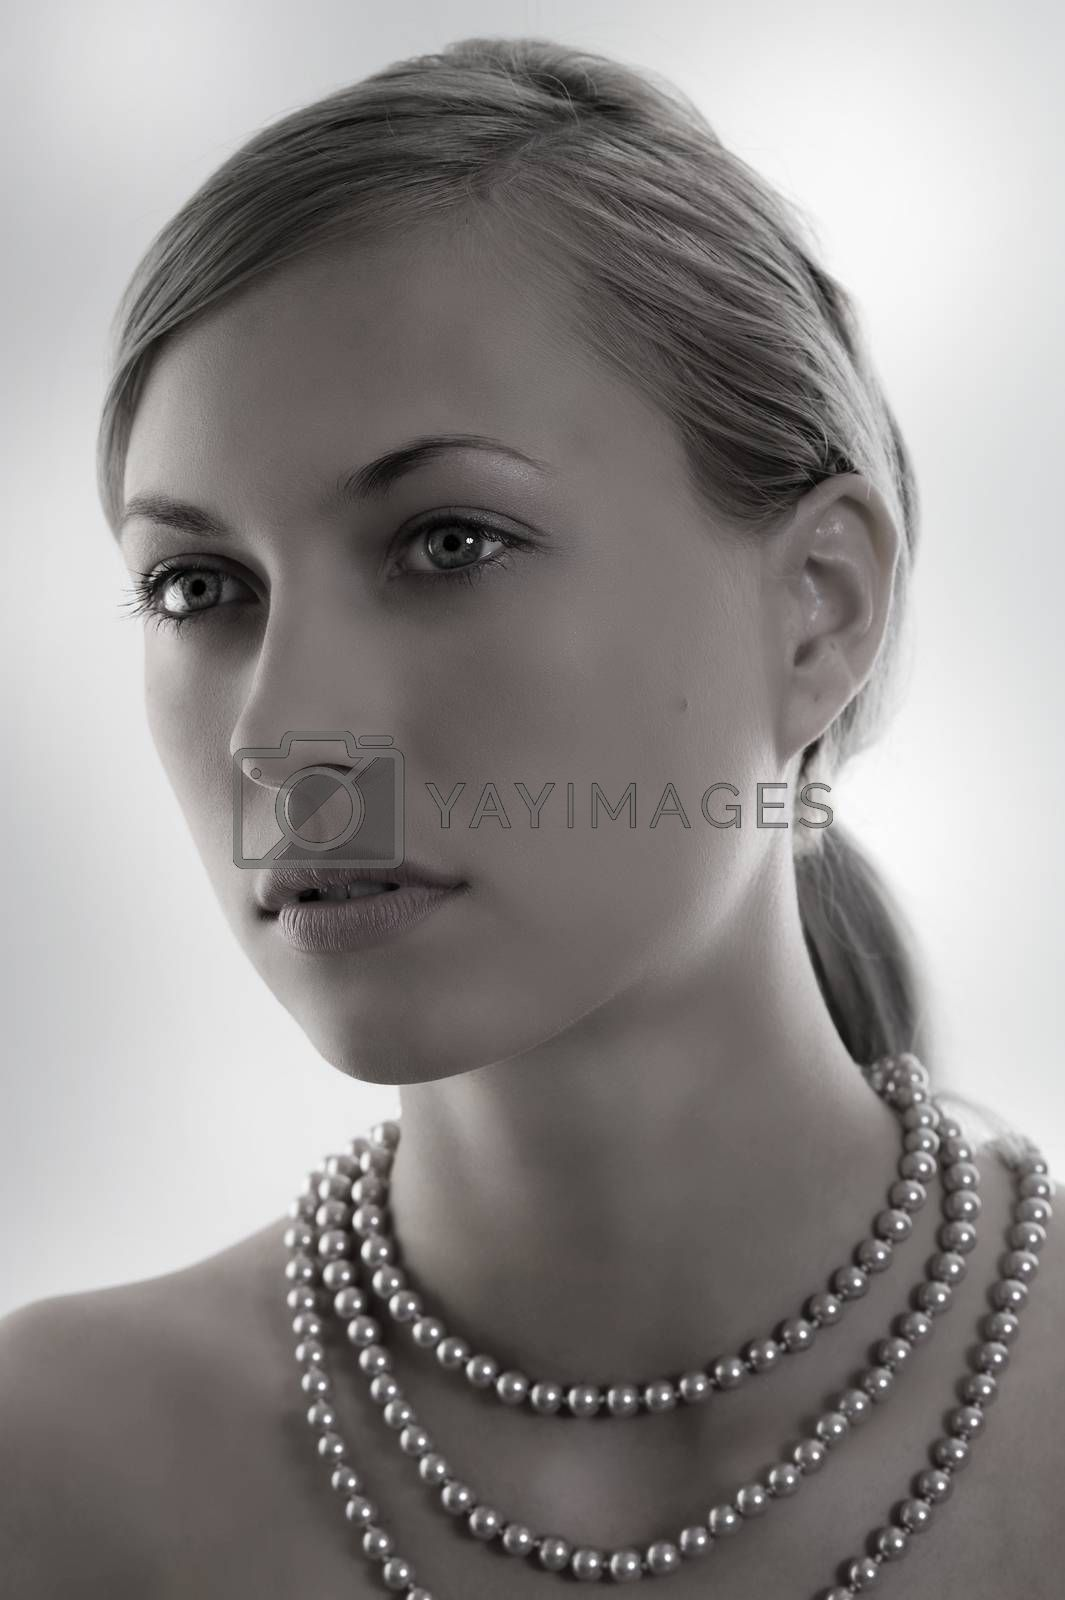 Royalty free image of desaturate lady with pearl by fotoCD